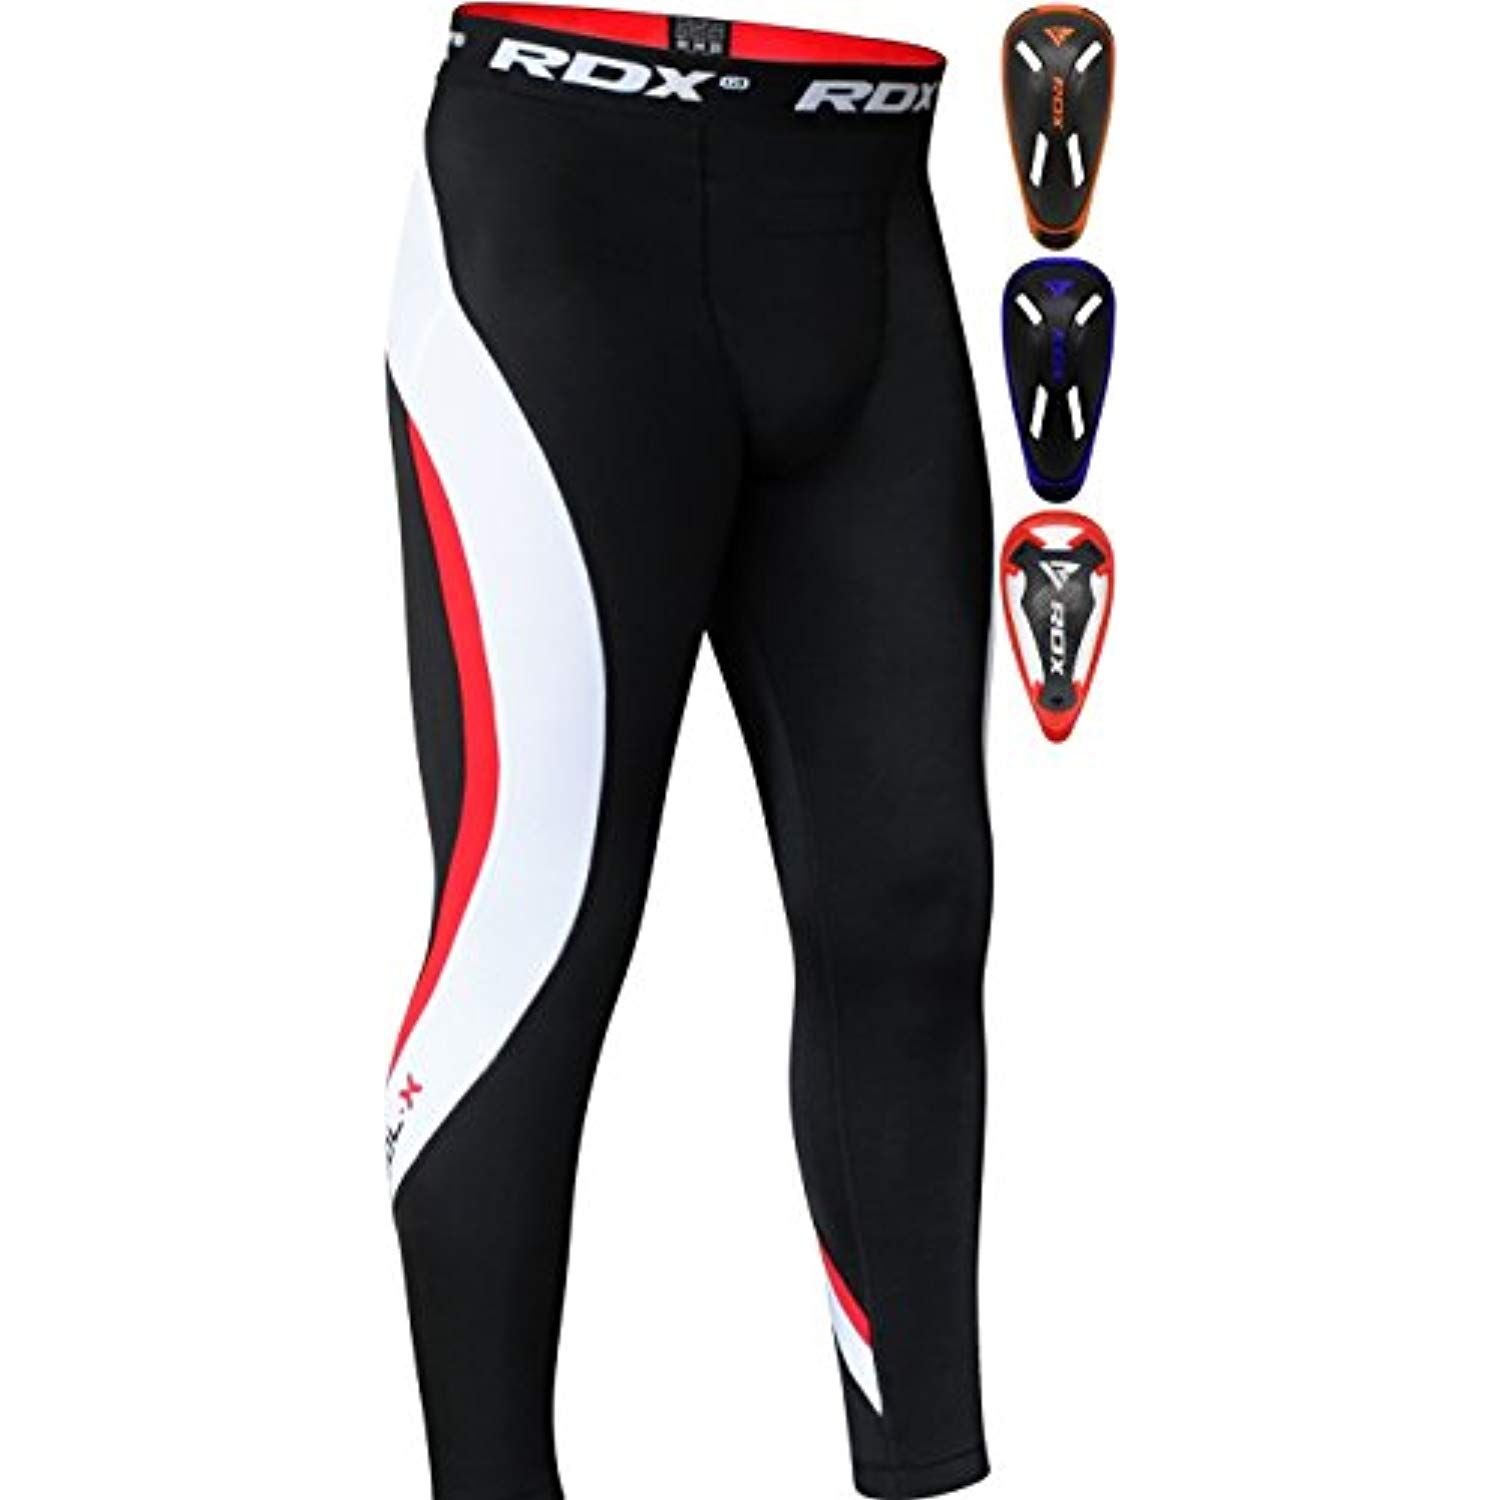 RDX MMA Thermal Compression Shorts Boxing Tights Training Base Layer Fitness Running Cycling Gym Exercise Workout